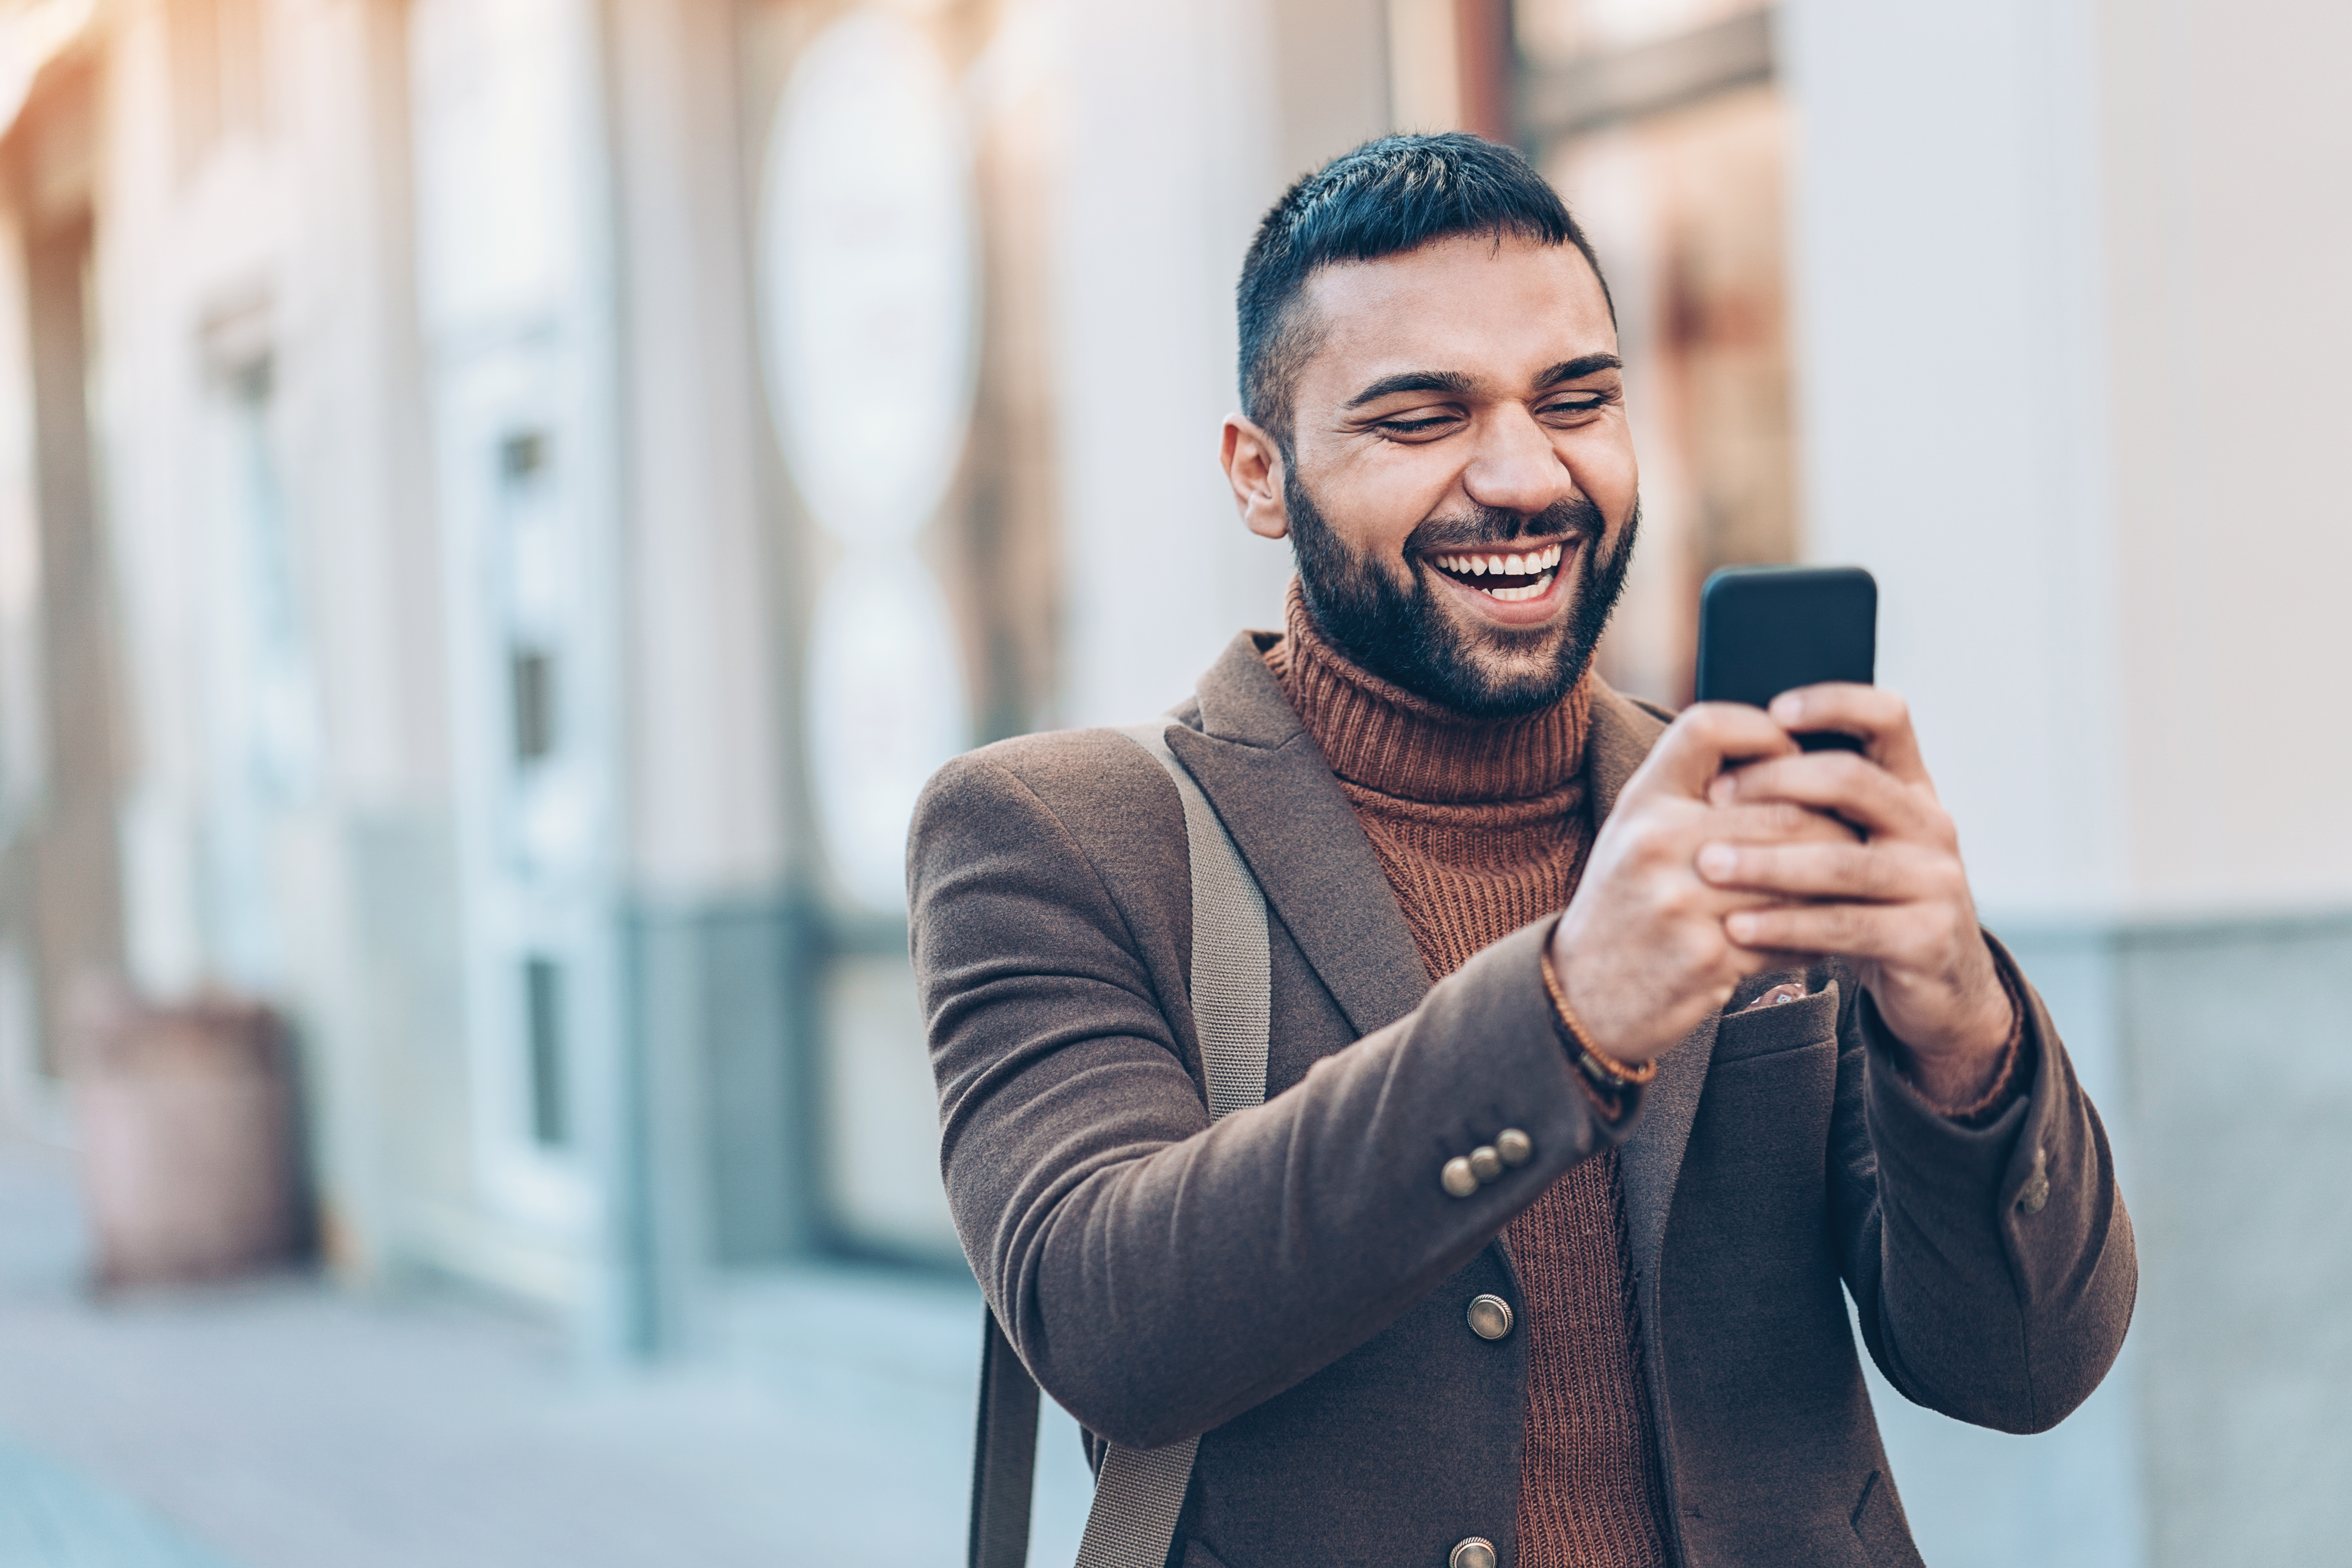 Smiling man with smart phone outdoors in the city